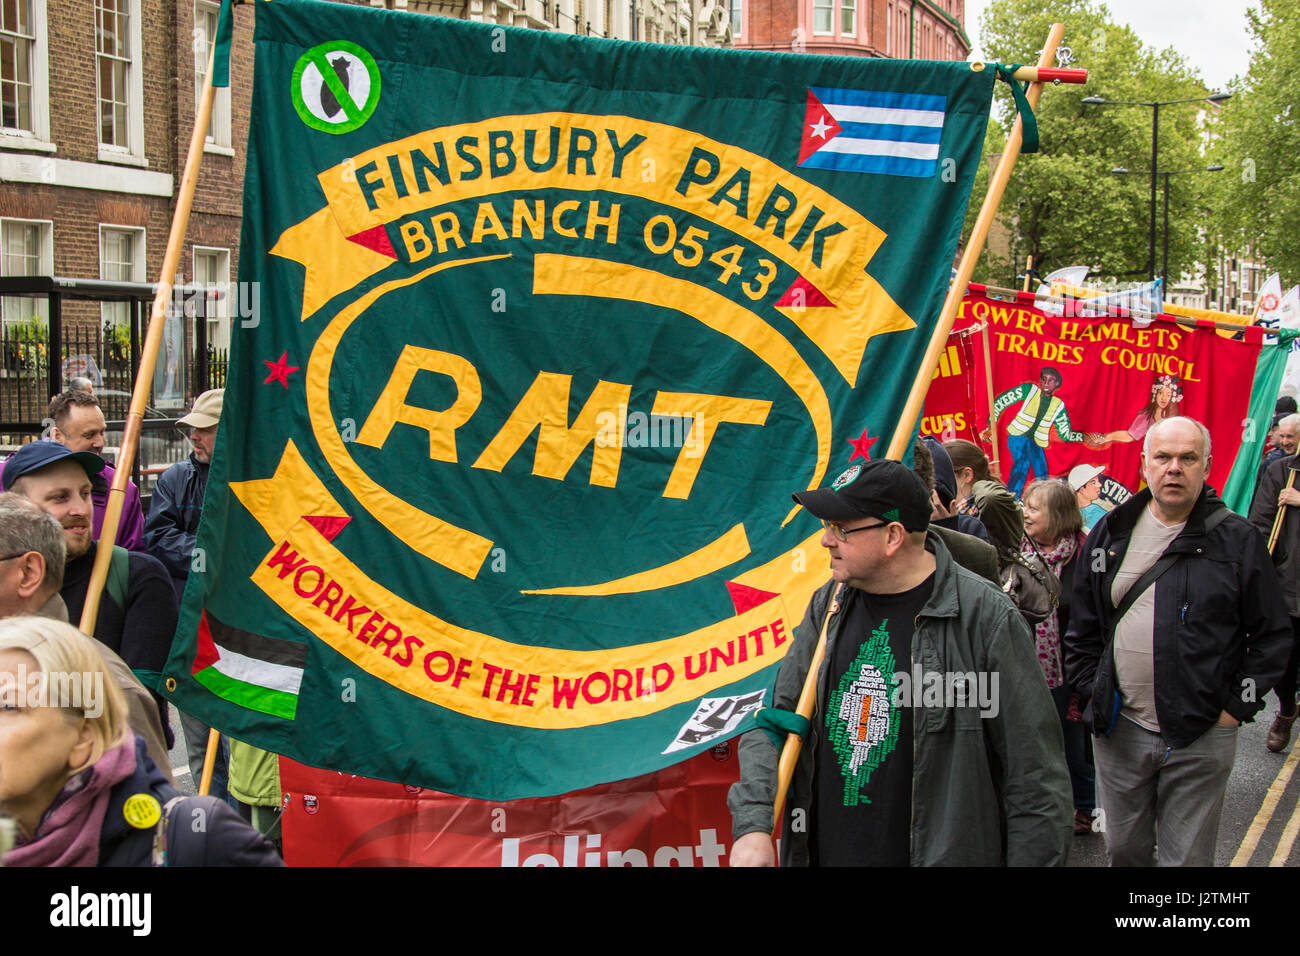 London, UK. 1st May, 2017. 'Workers of the World unite' an RMT union banner on the traditional May Day workers - Stock Image